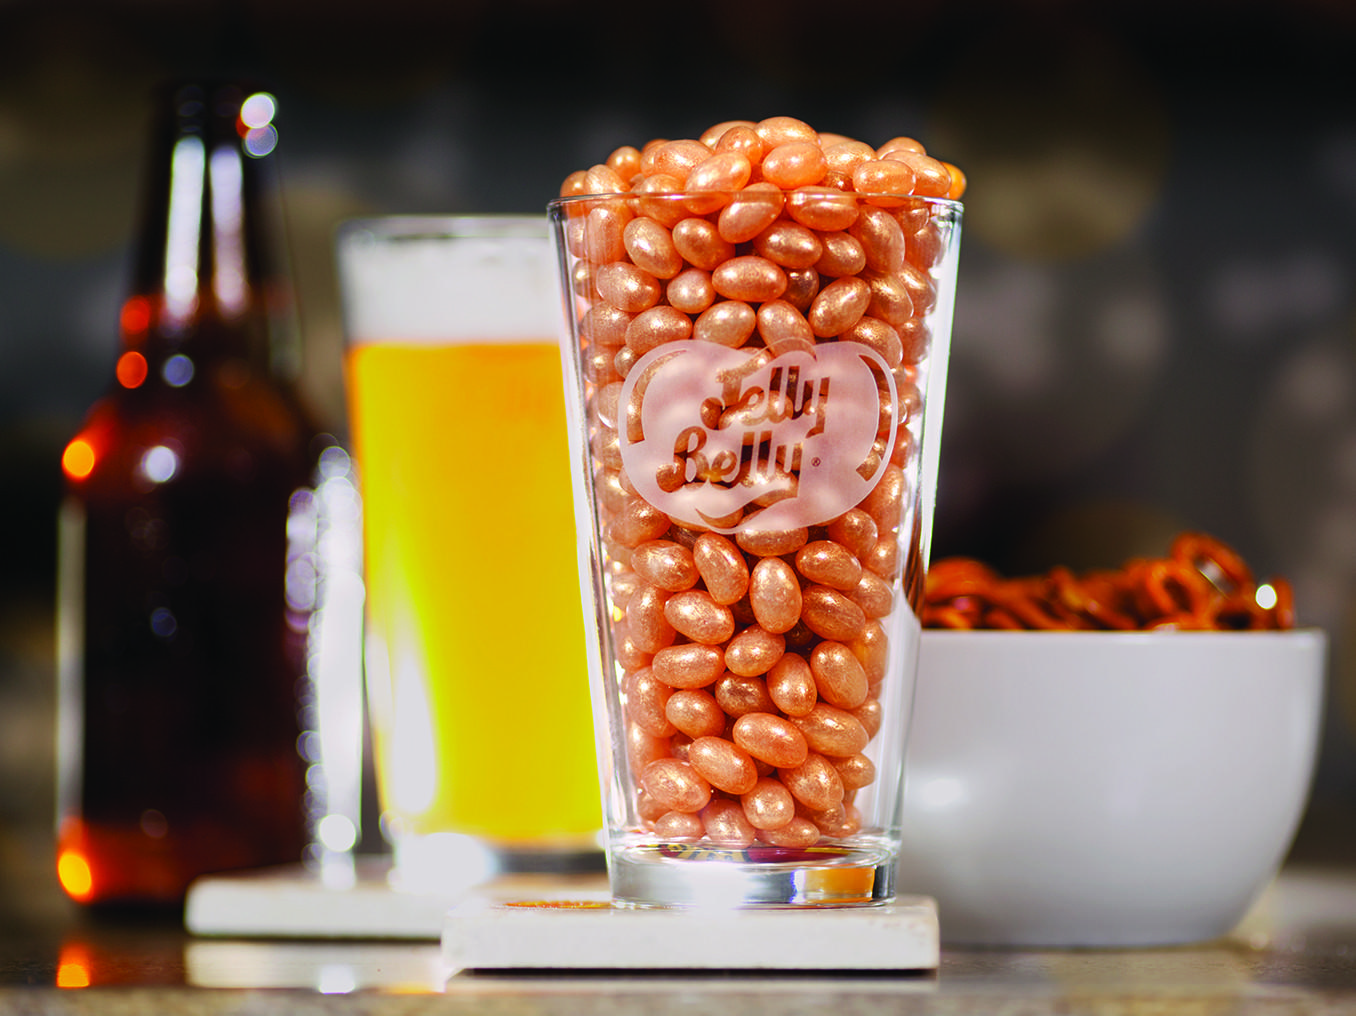 Jelly Belly has launched a beer-flavored jelly bean called Draft.